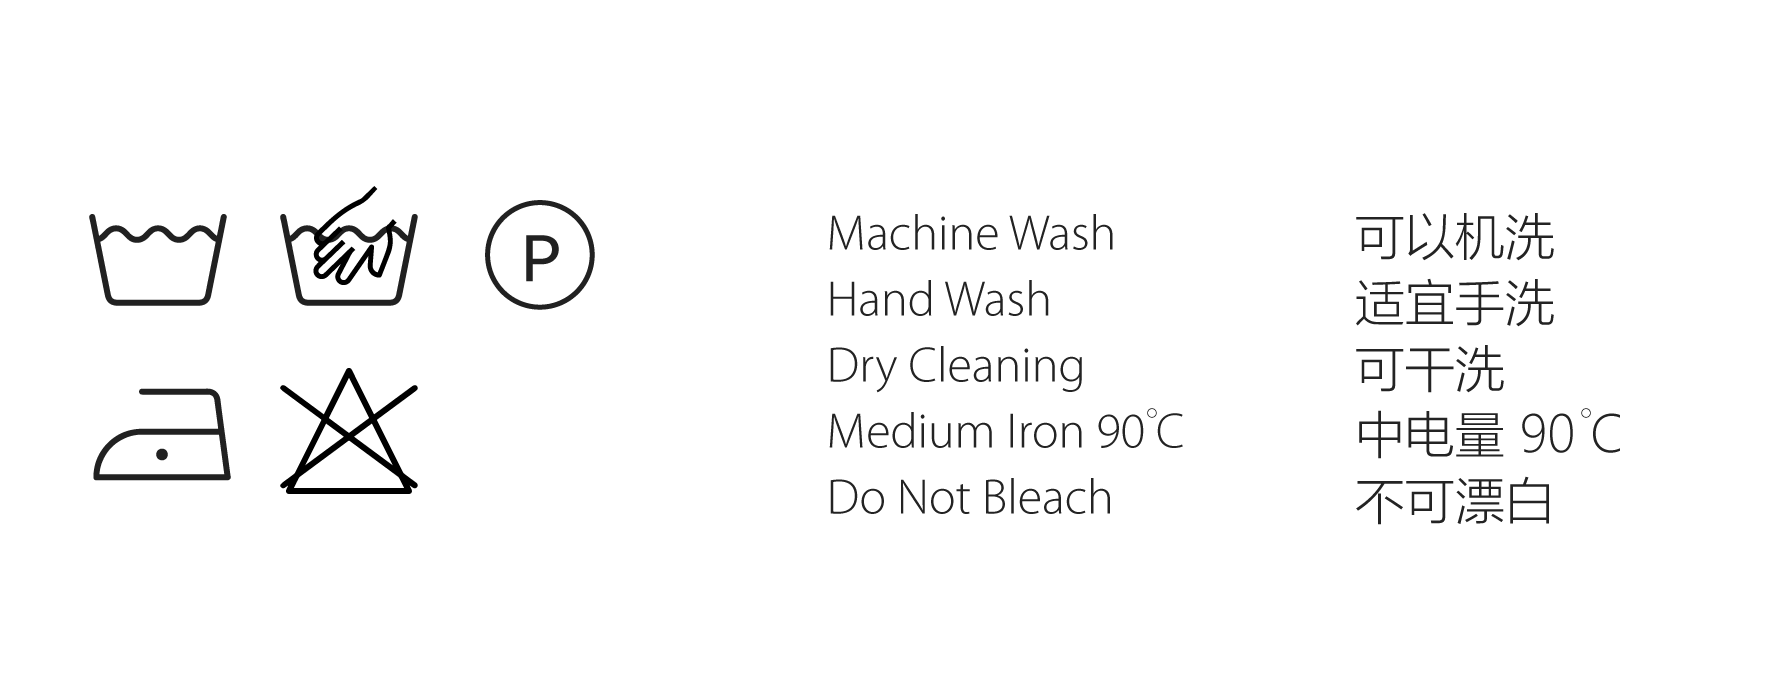 laundry-guide.png